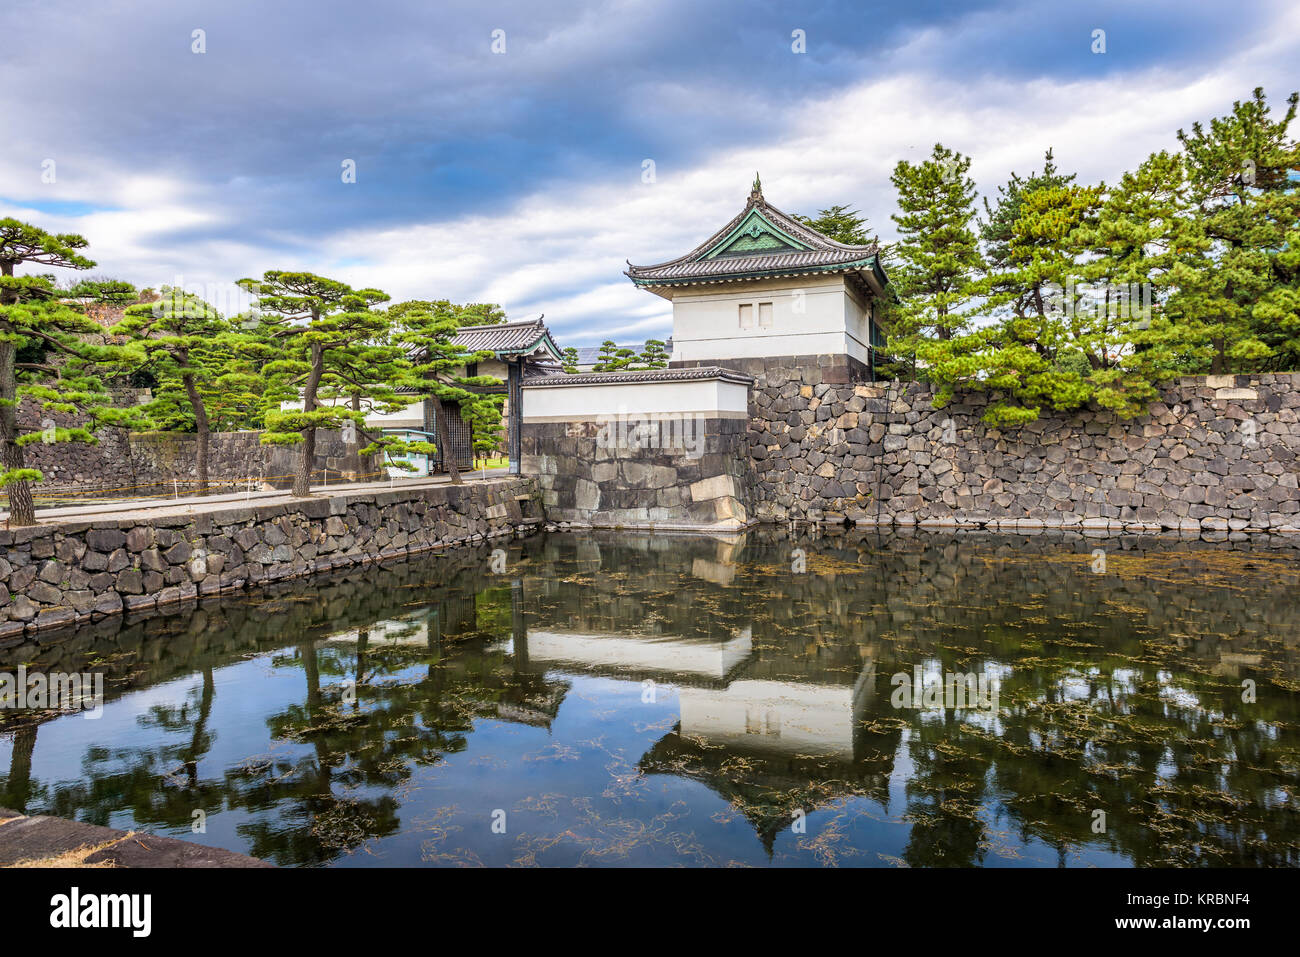 Tokyo, Japan at the Imperial Palace moat. - Stock Image